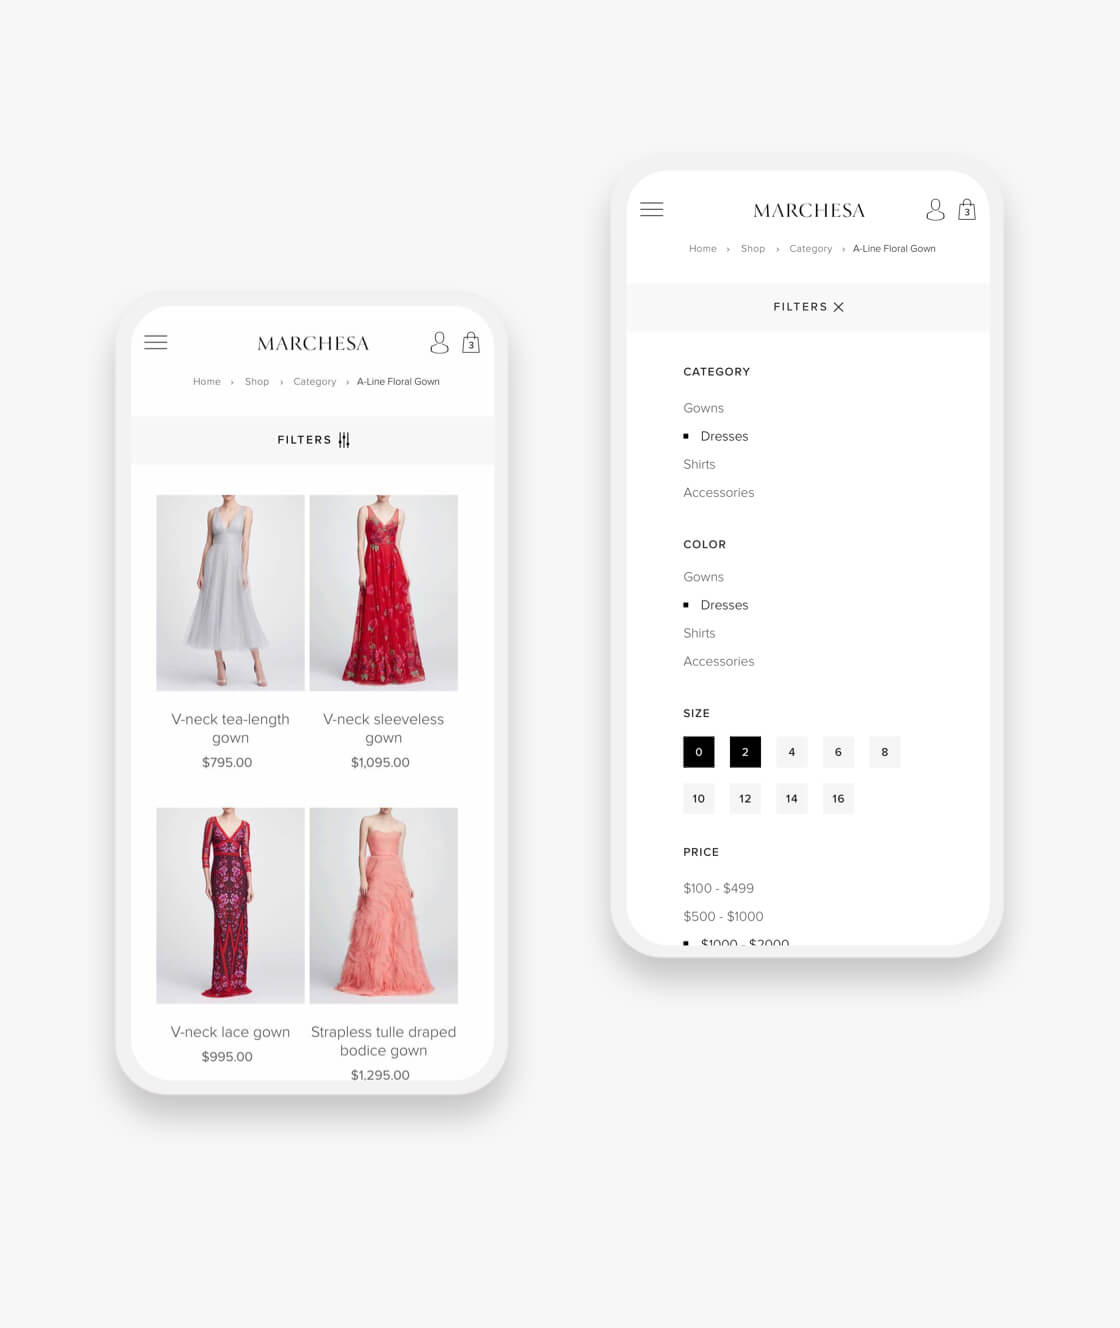 marchesa shopify plus collection page and product filter on mobile